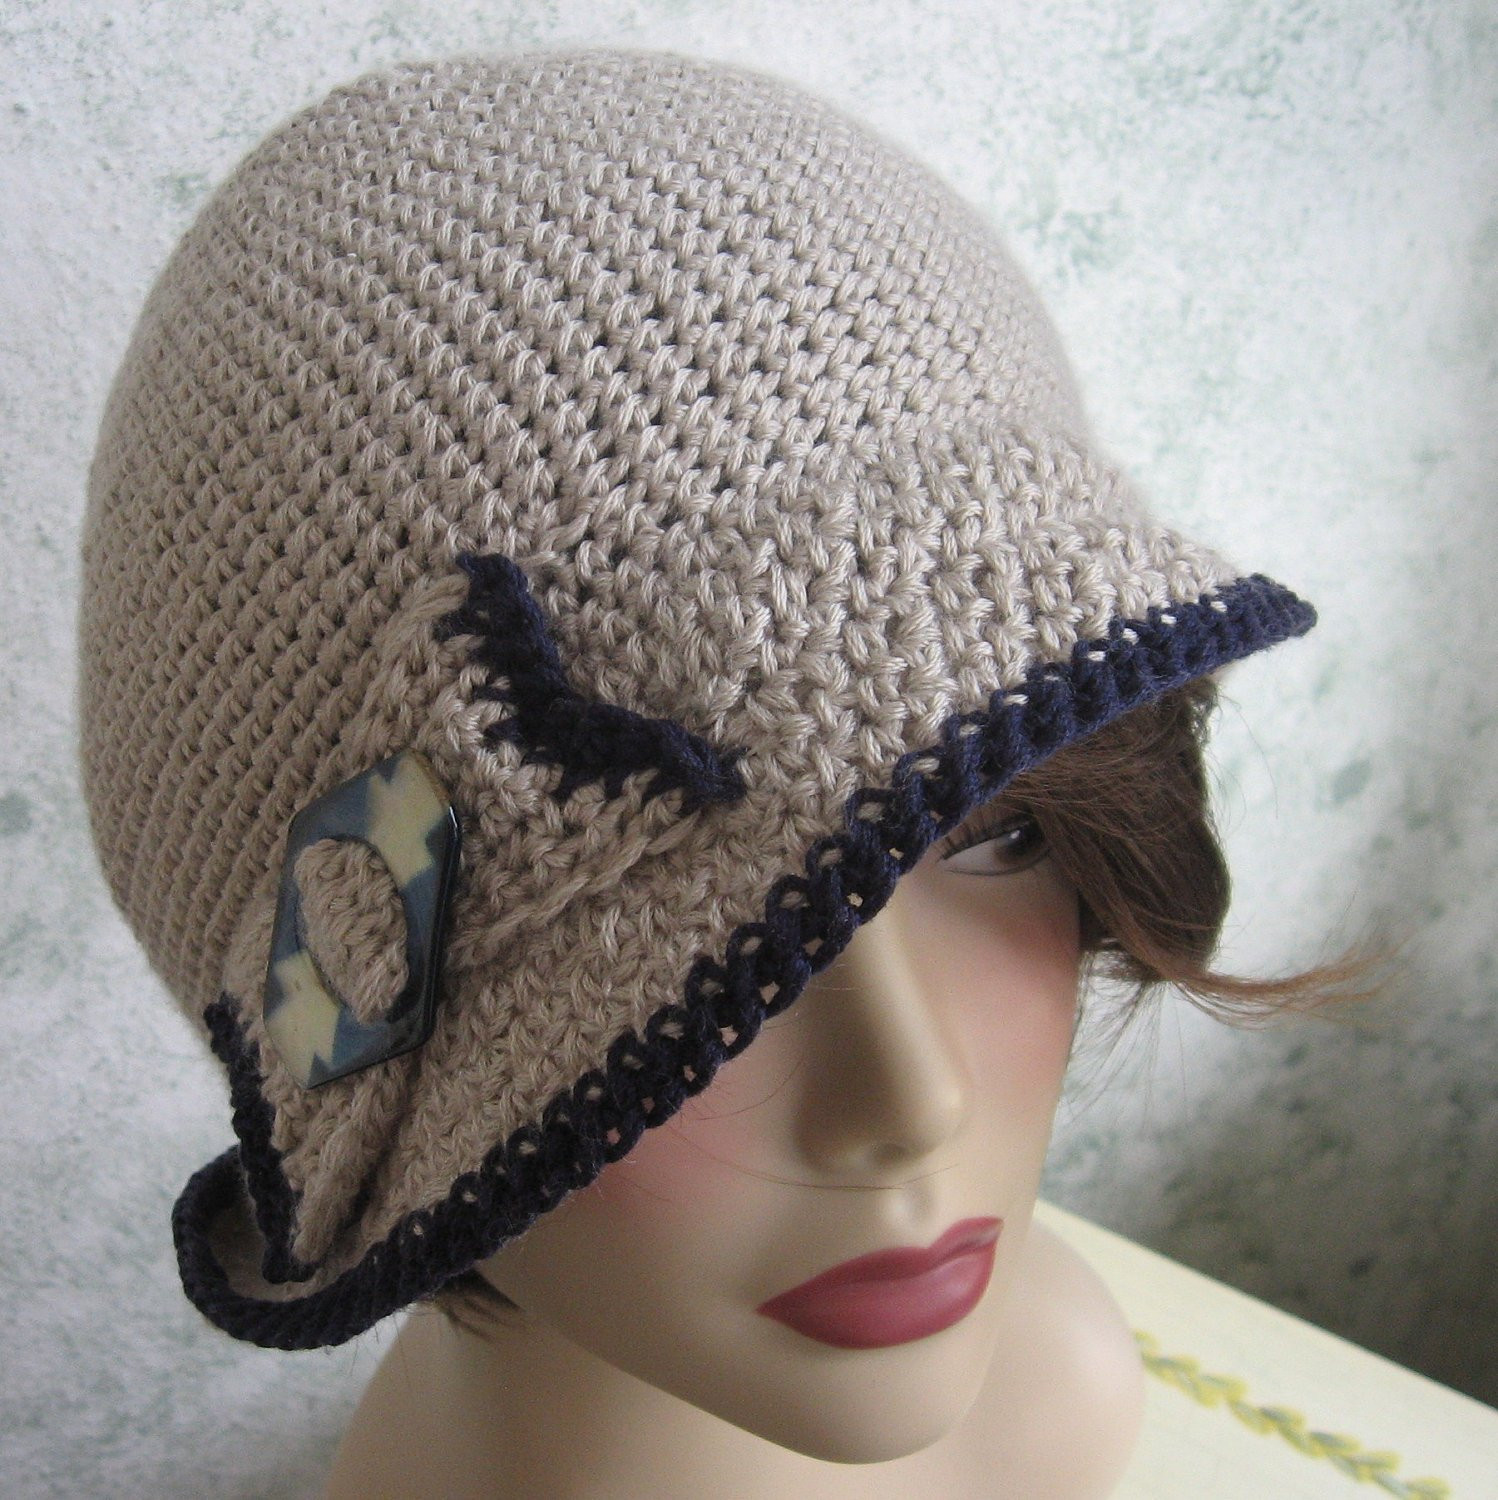 Free Crochet Hats Awesome Crochet Pattern Womens Flapper Hat with Bow Trim Instant Of Incredible 43 Photos Free Crochet Hats